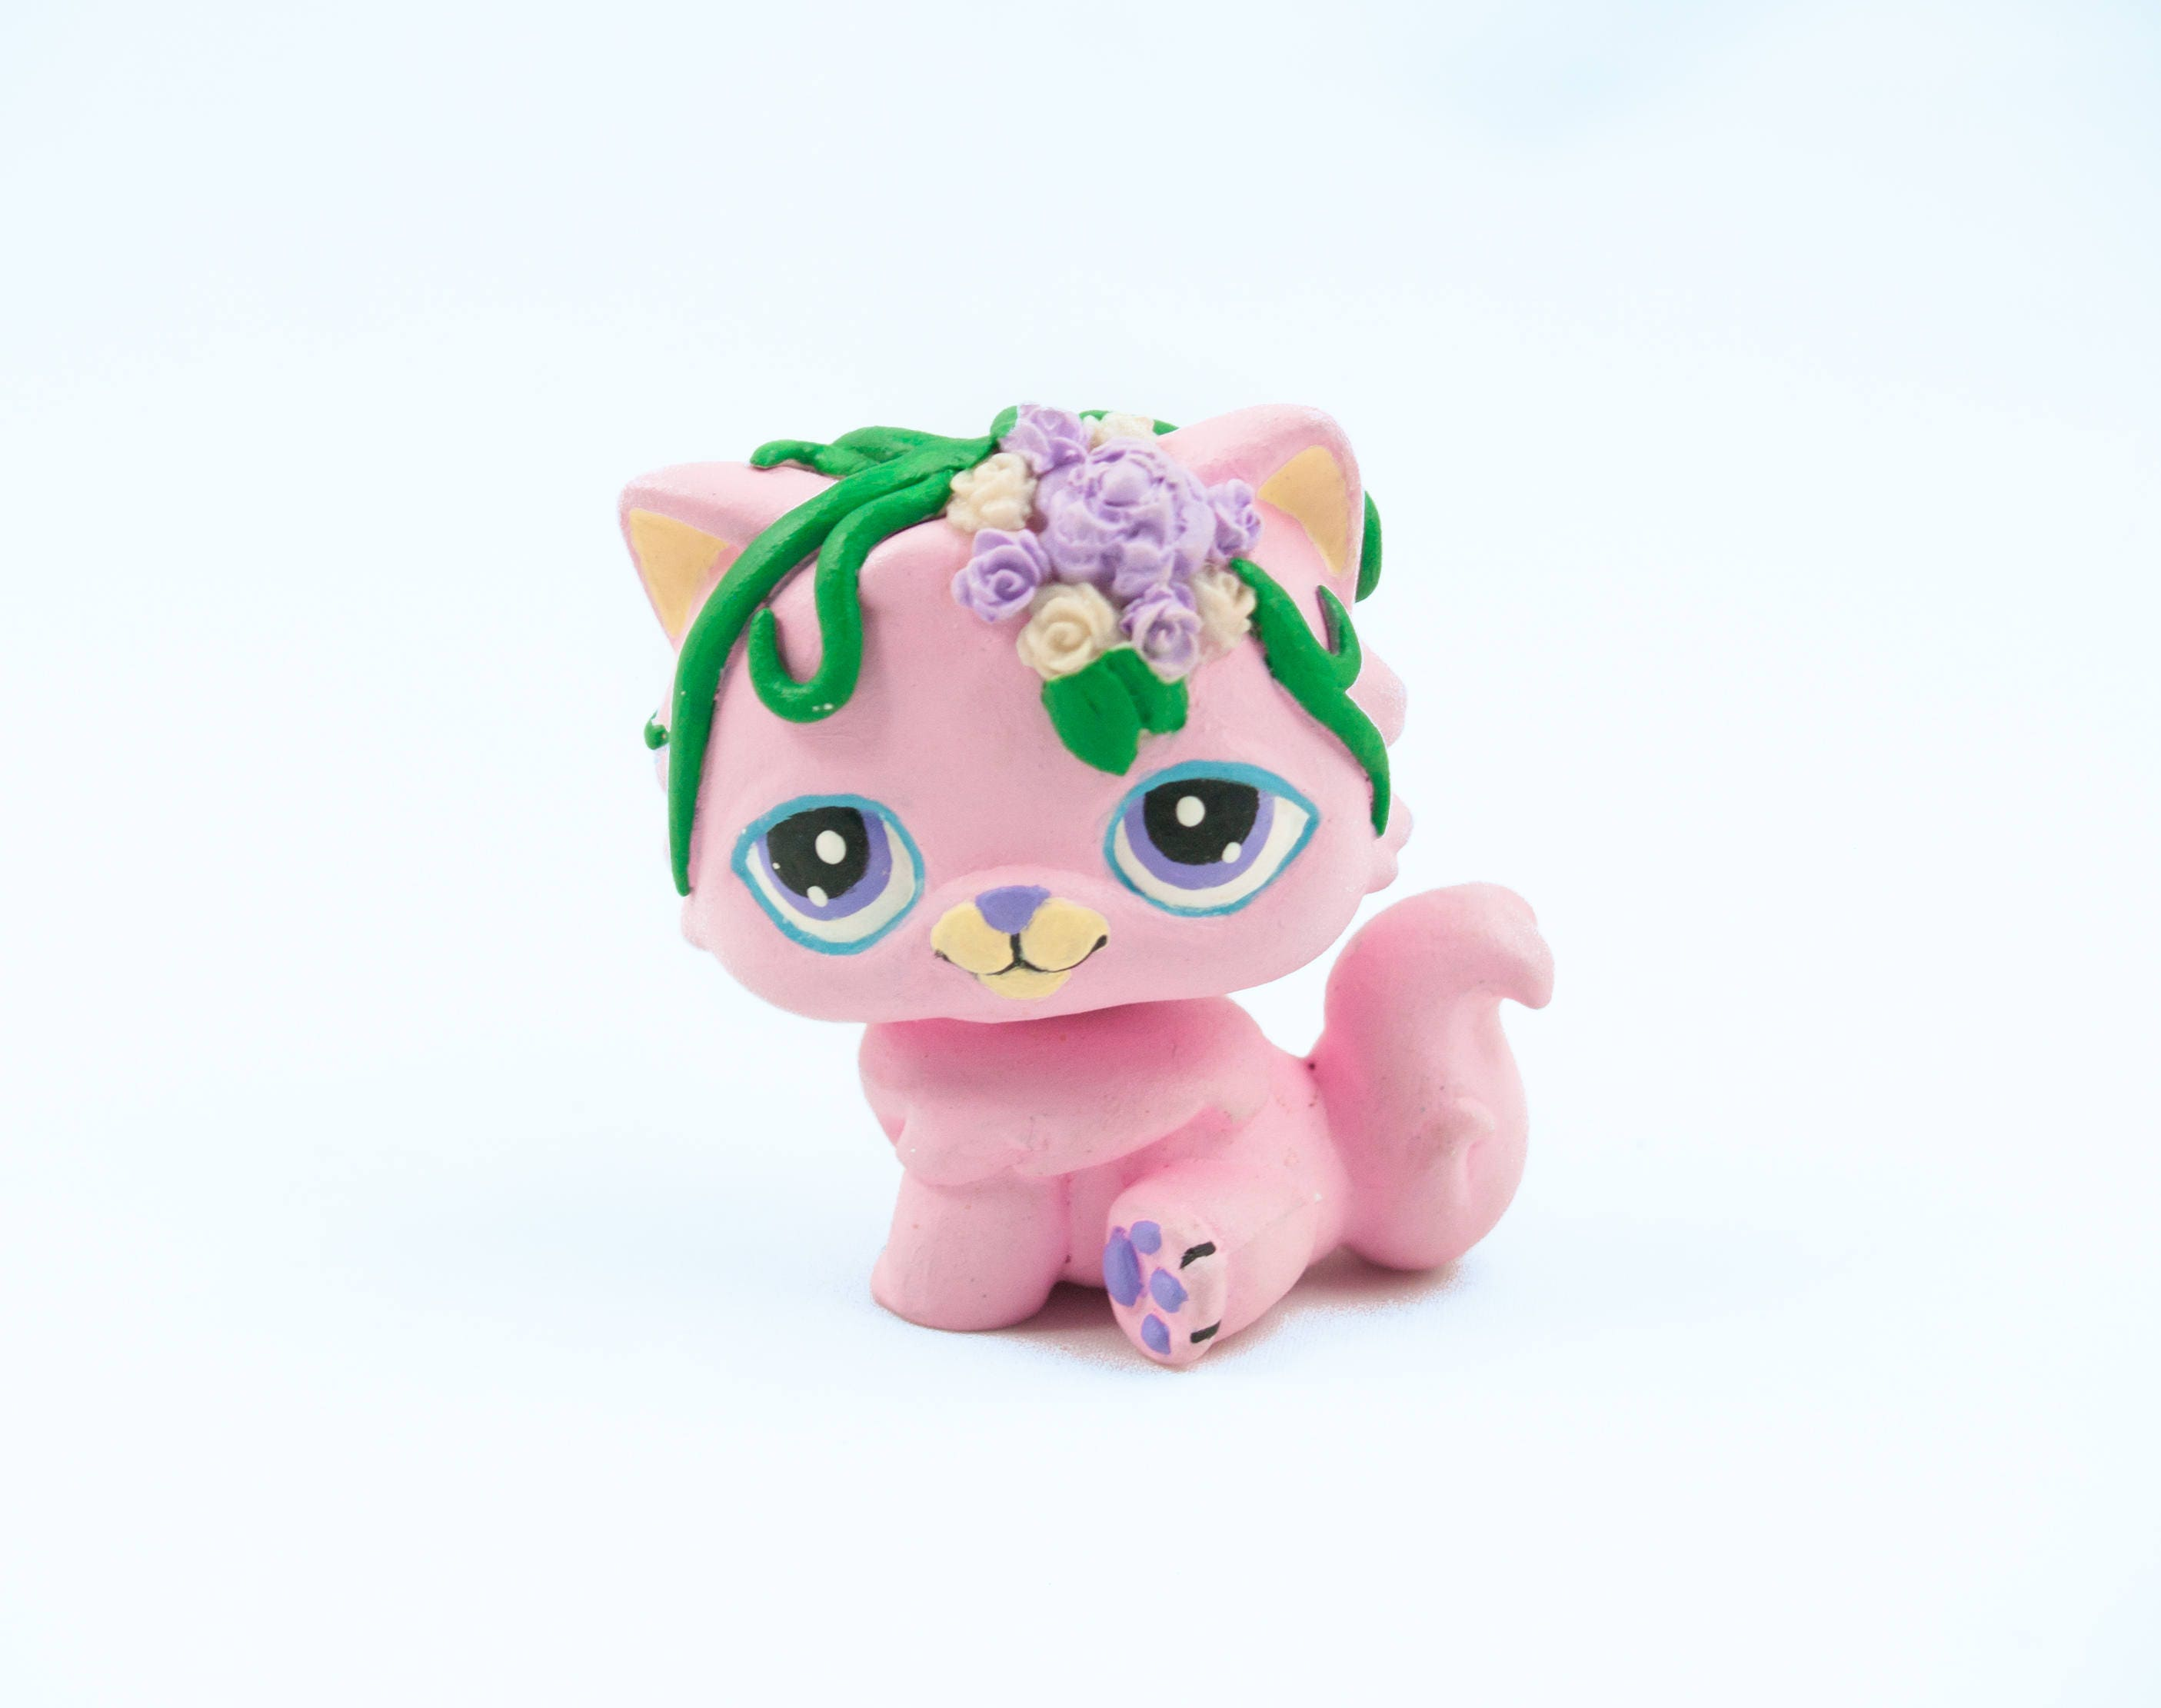 LPS Cat LPS Toy Cute Cat Kitten Cat Cat Toy Kids Gifts